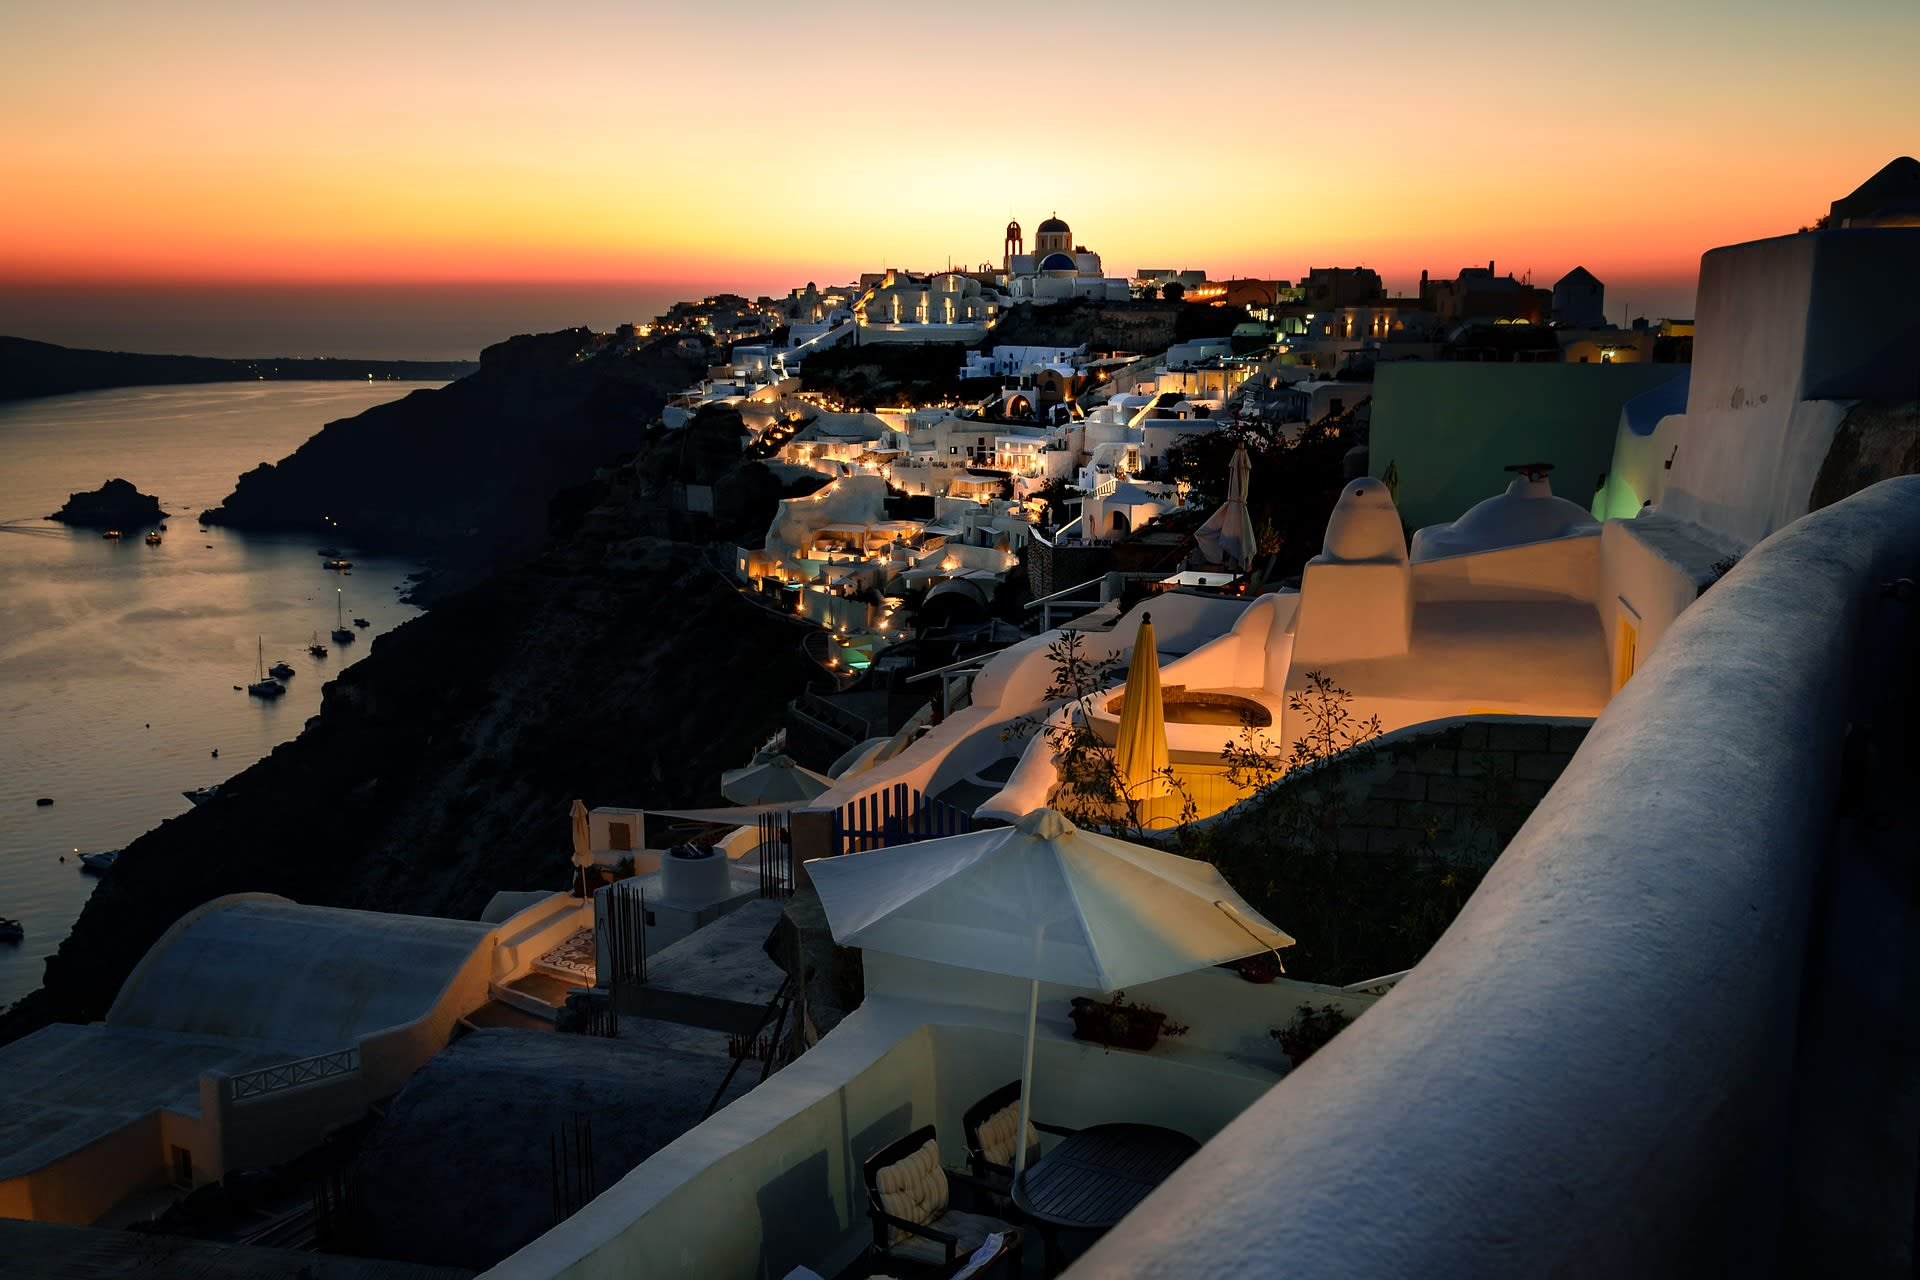 Best Party Islands World Santorini Greece Rooftop Sunset